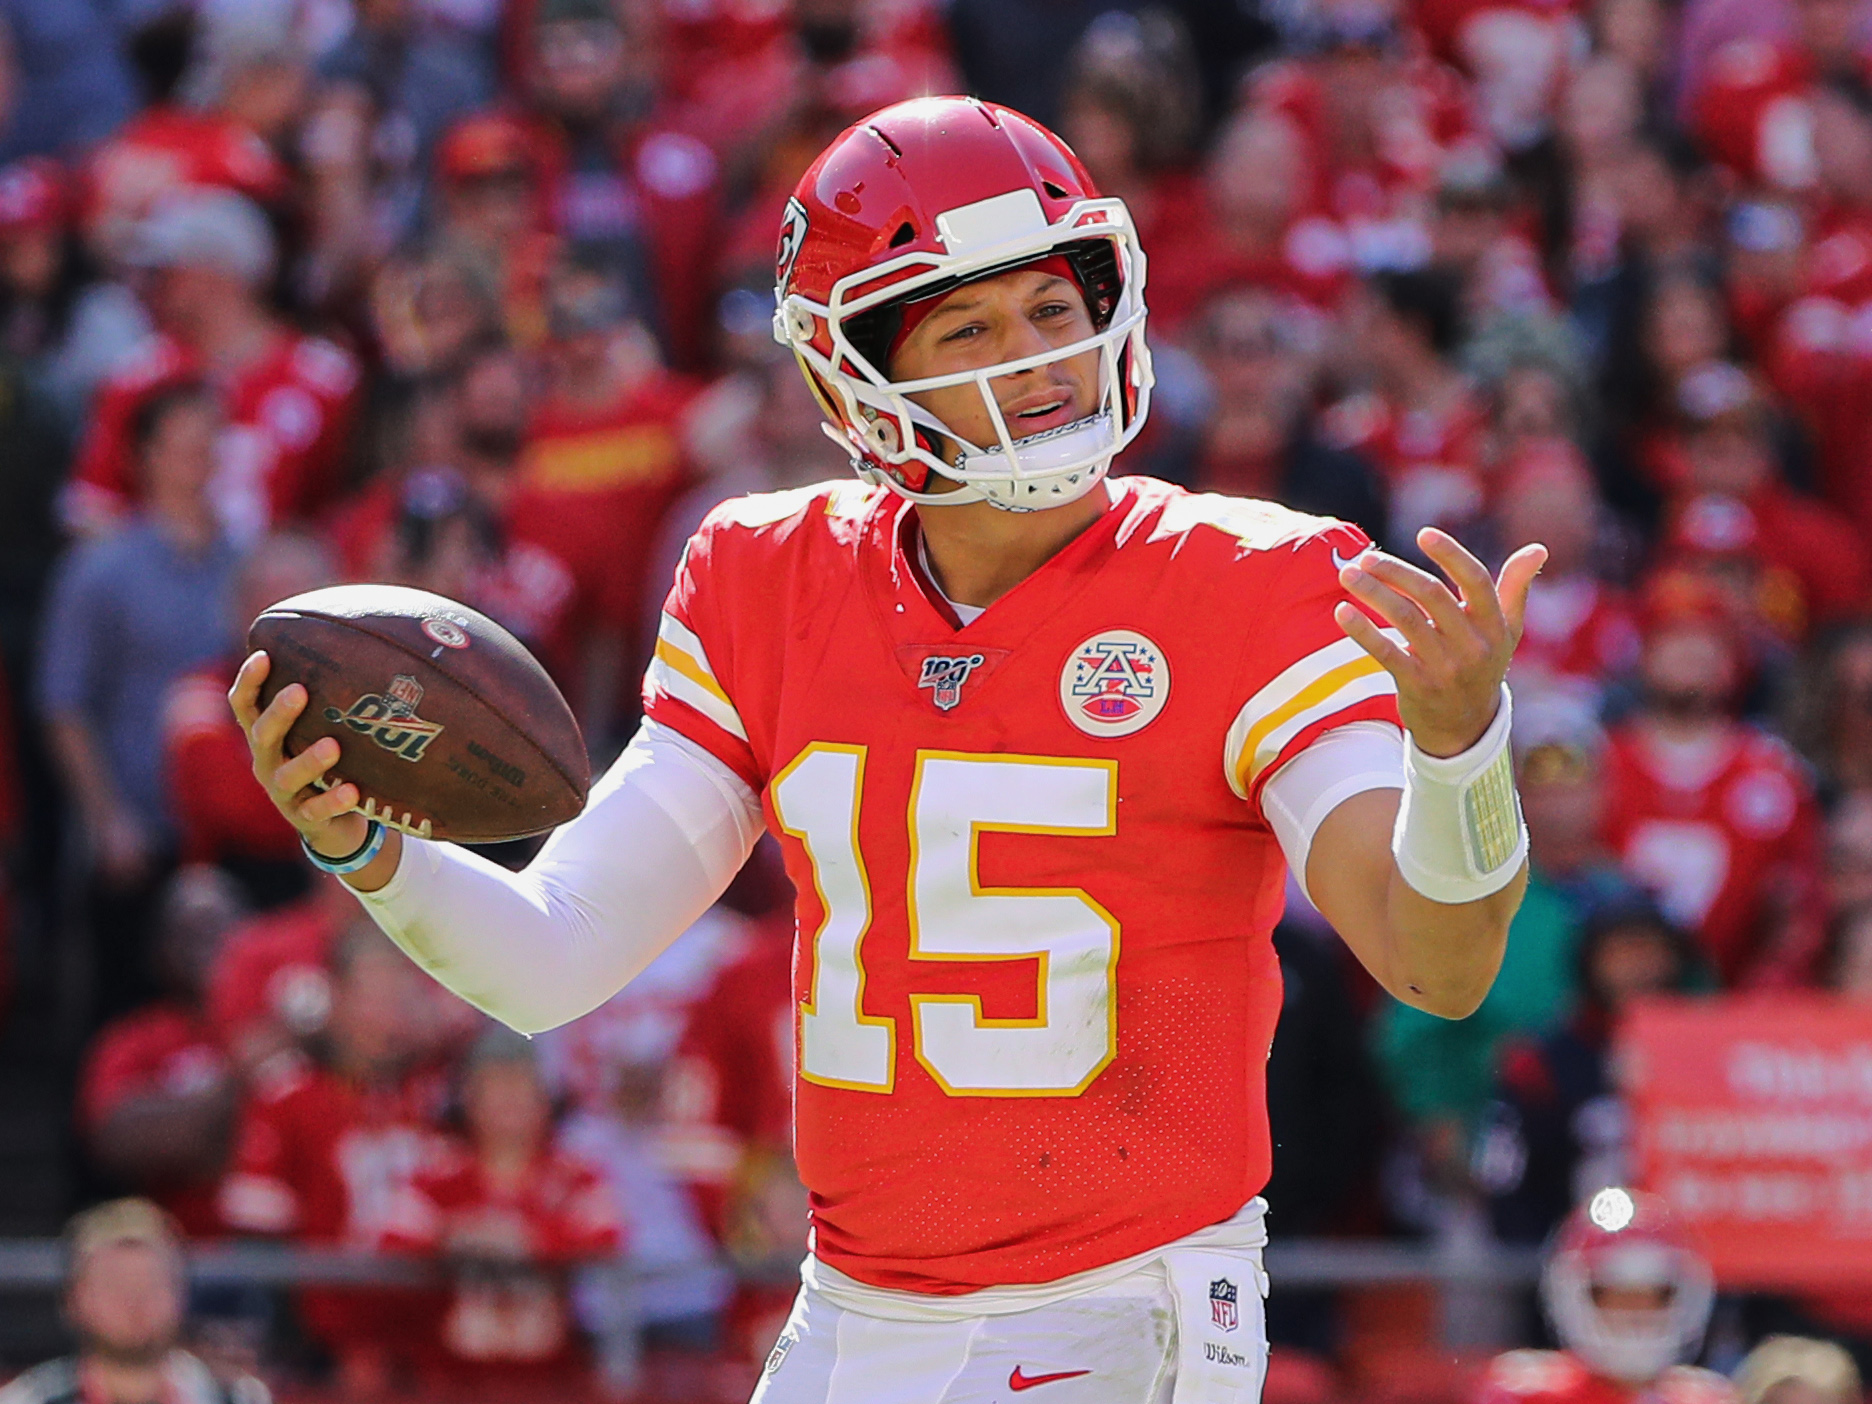 NFL: Houston Texans at Kansas City Chiefs